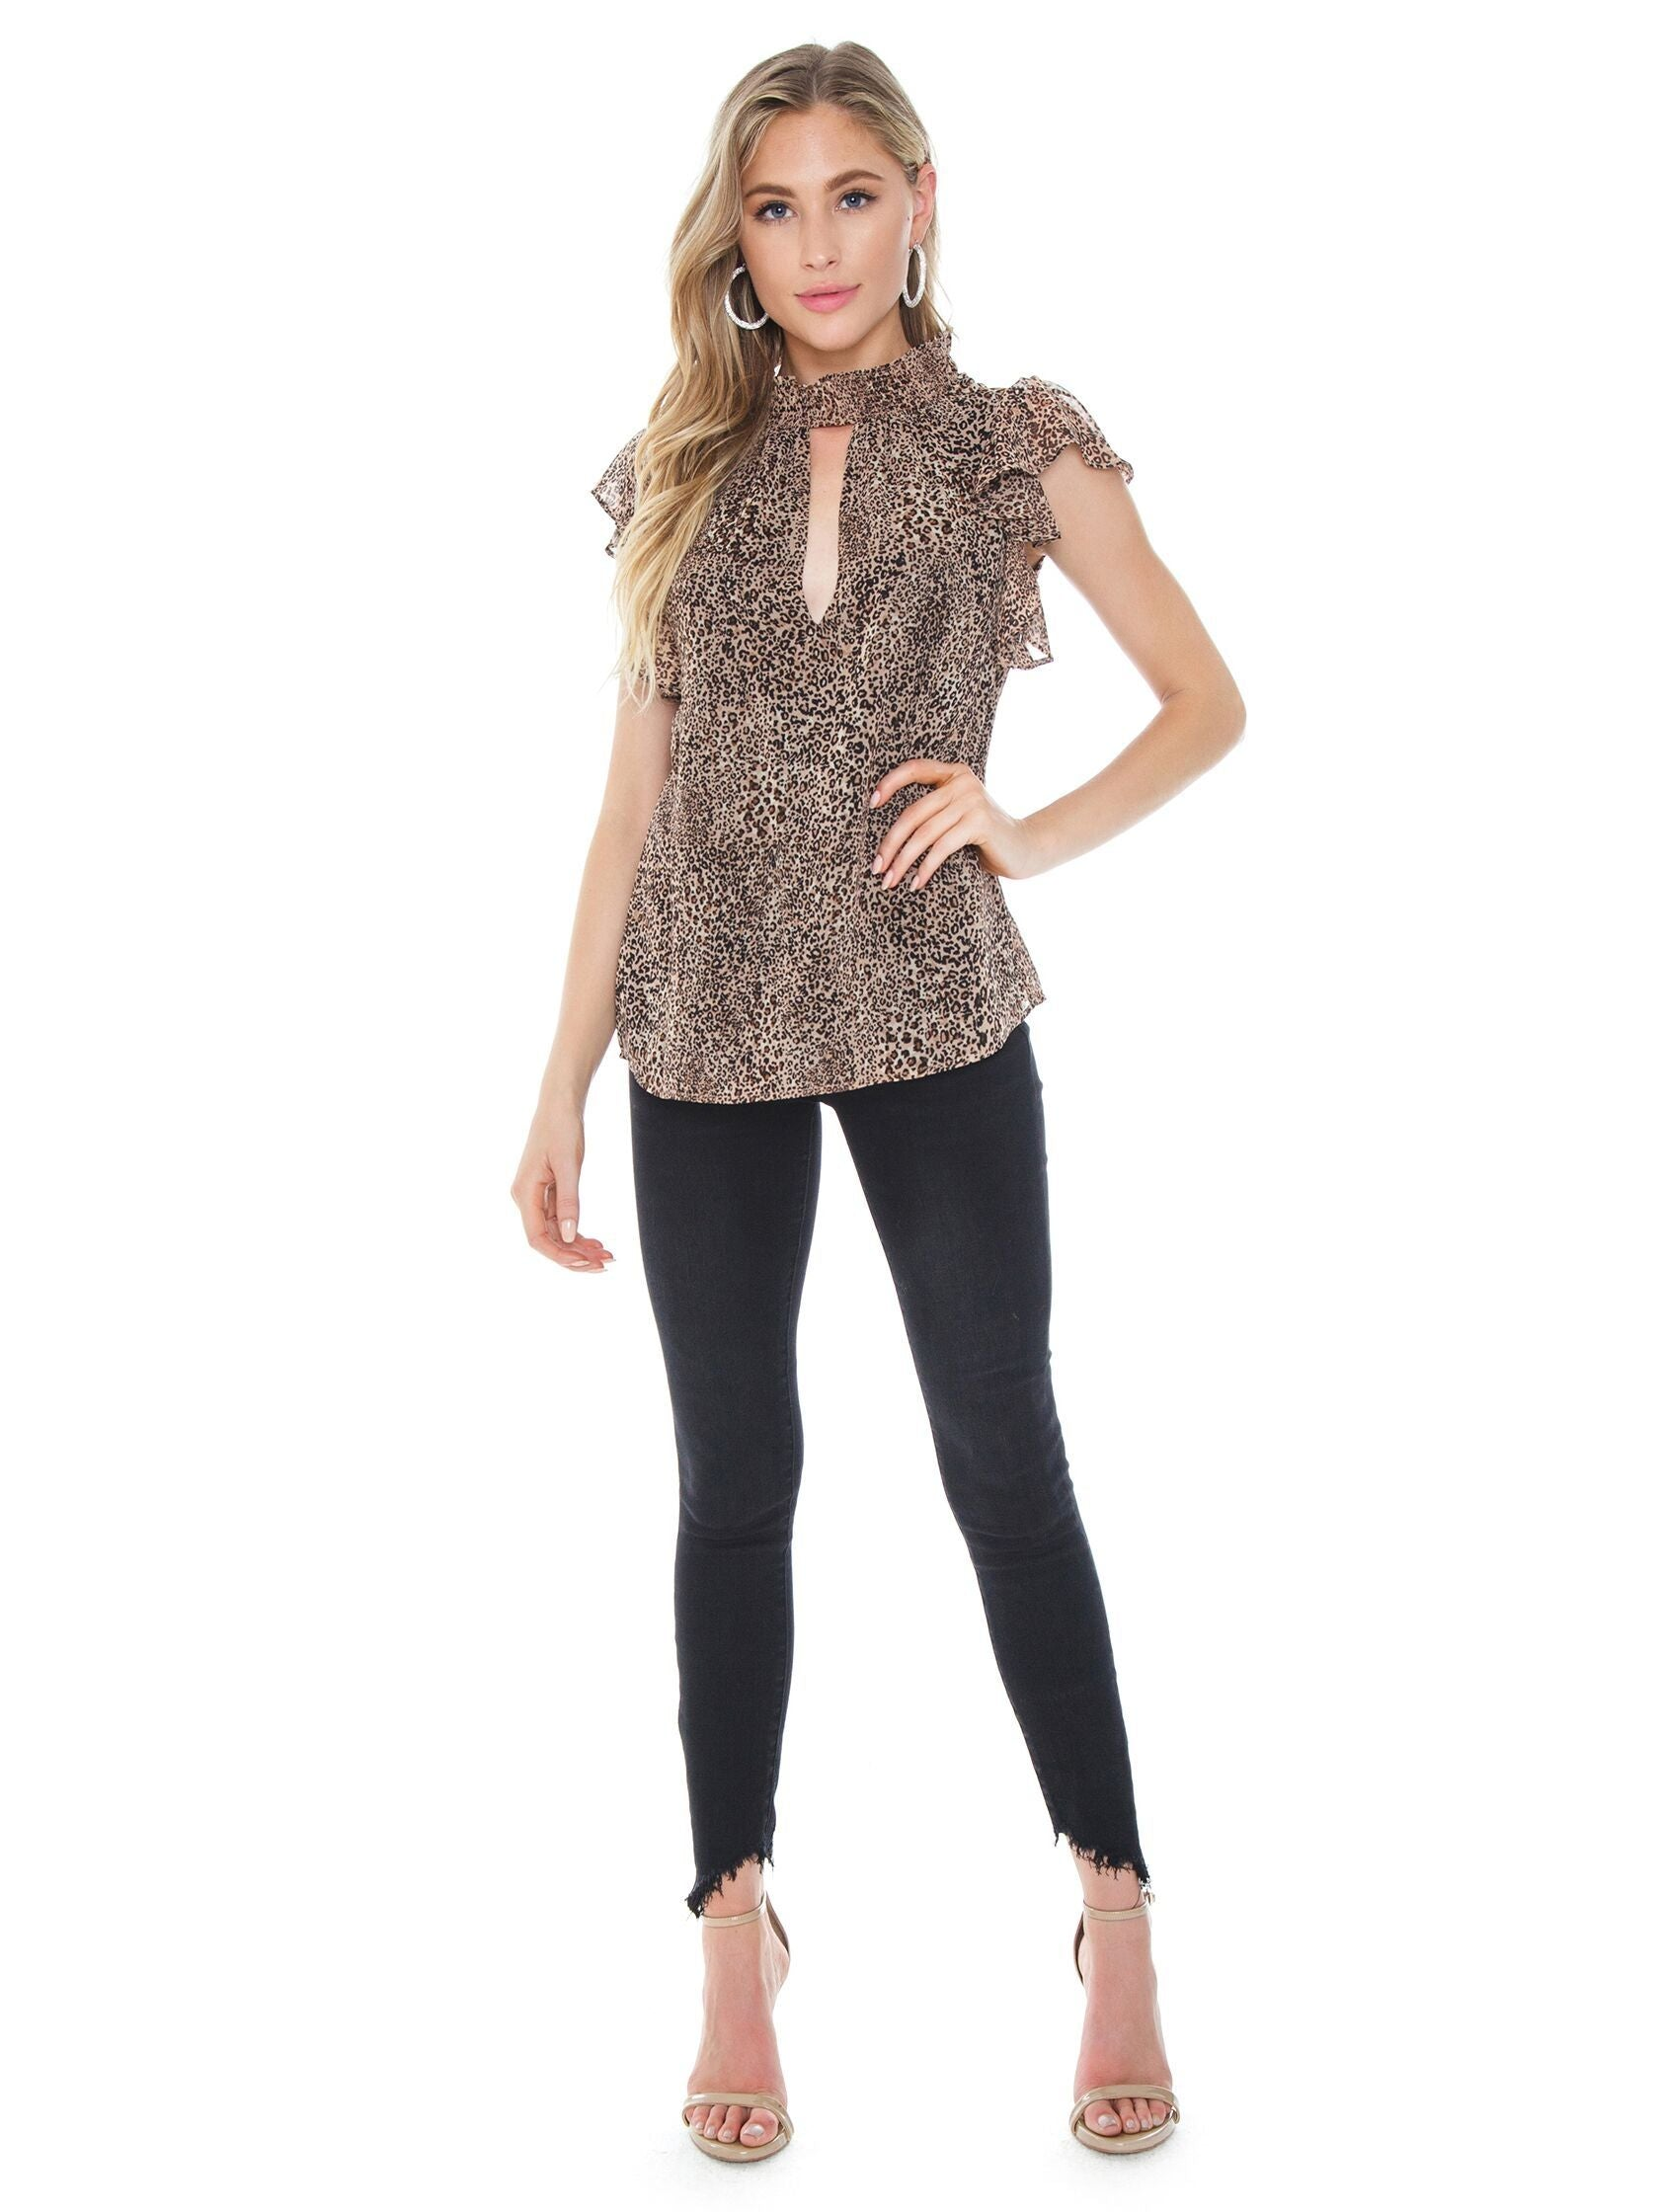 Girl wearing a top rental from 1.STATE called Leopard Muse Smocked Neck Keyhole Blouse